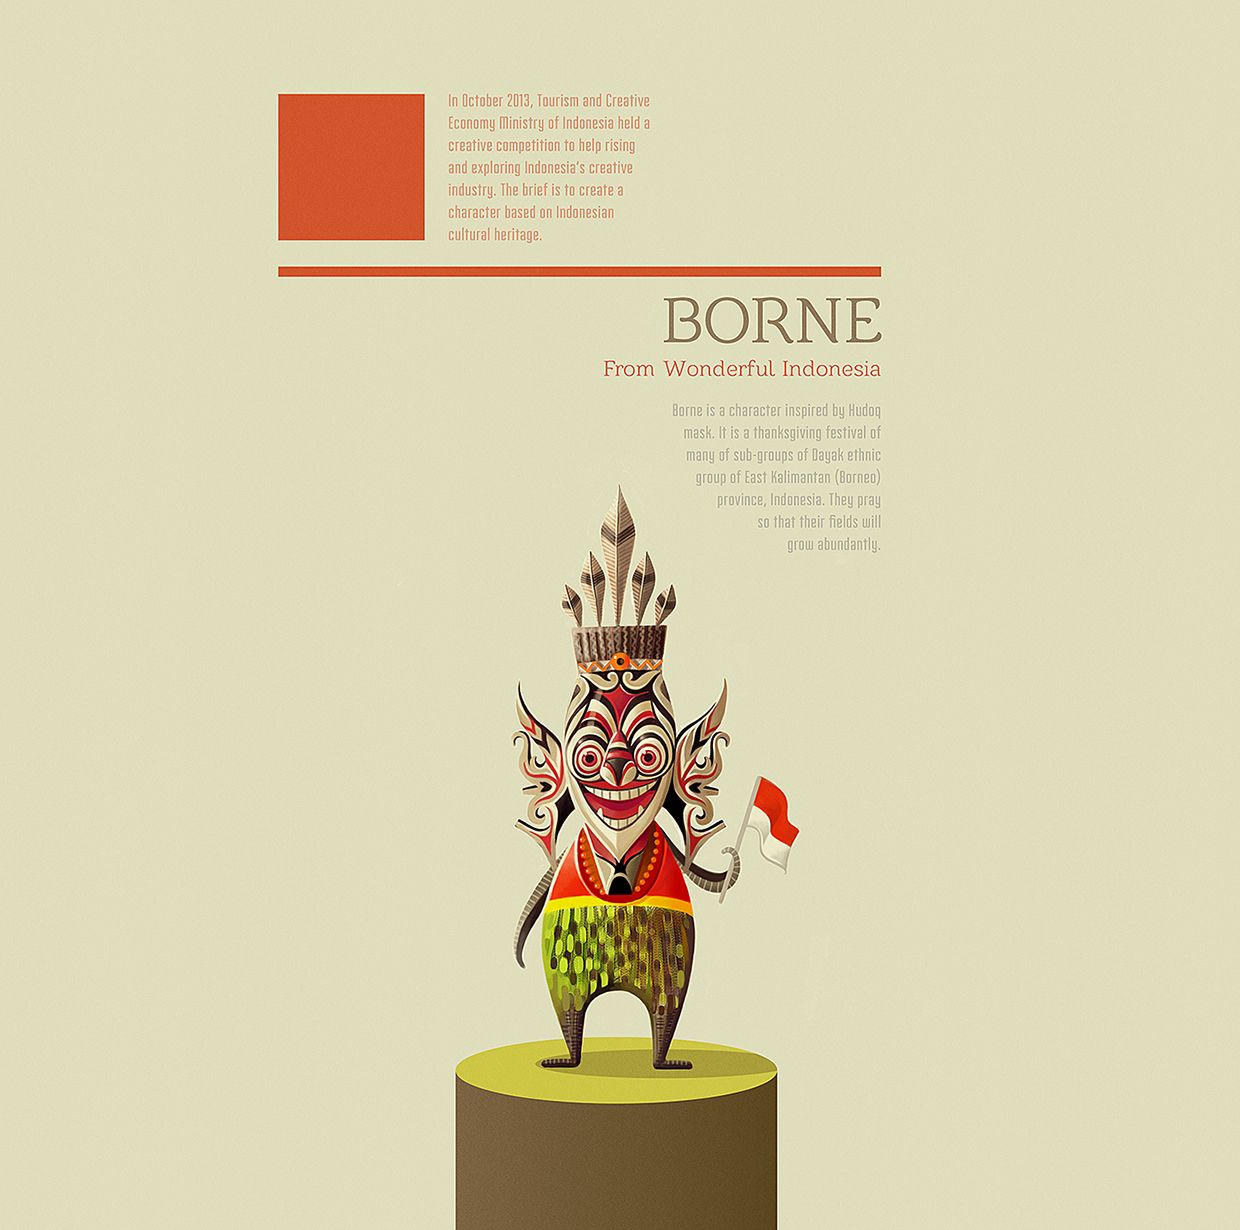 Wonderful Indonesia Culture And Heritage